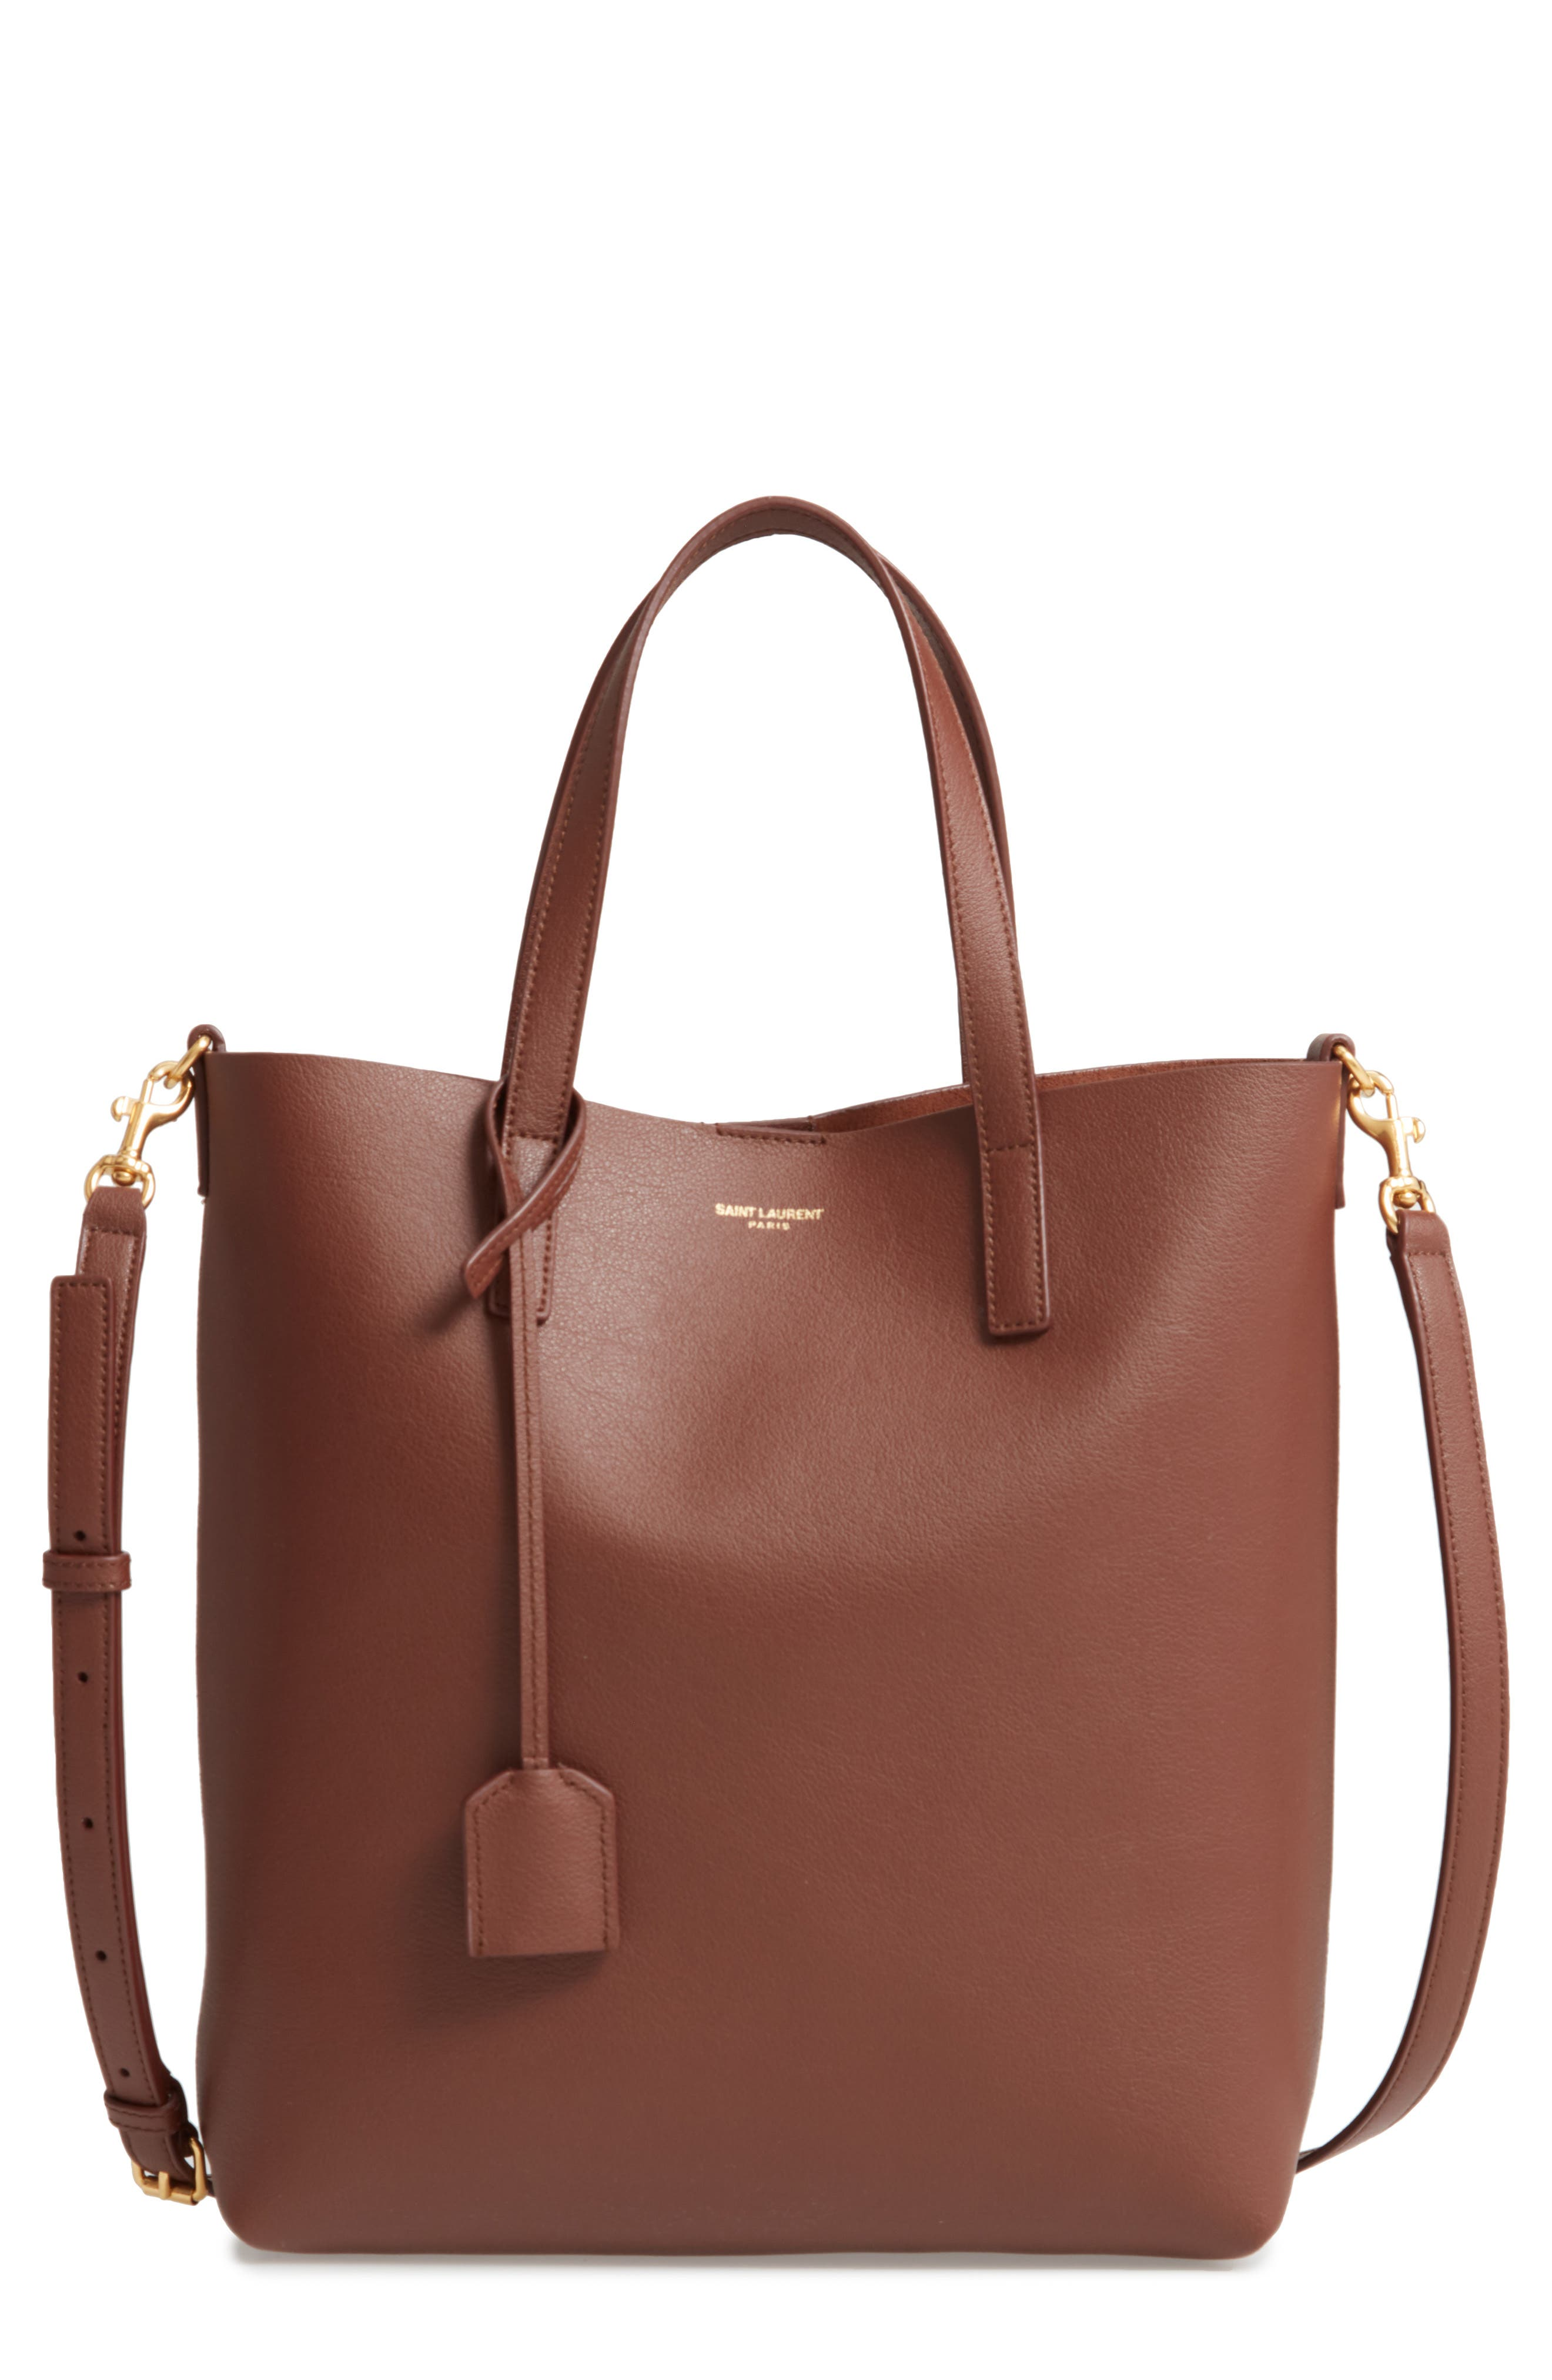 SAINT LAURENT Toy Shopping Leather Tote, Main, color, BRANDY OLD